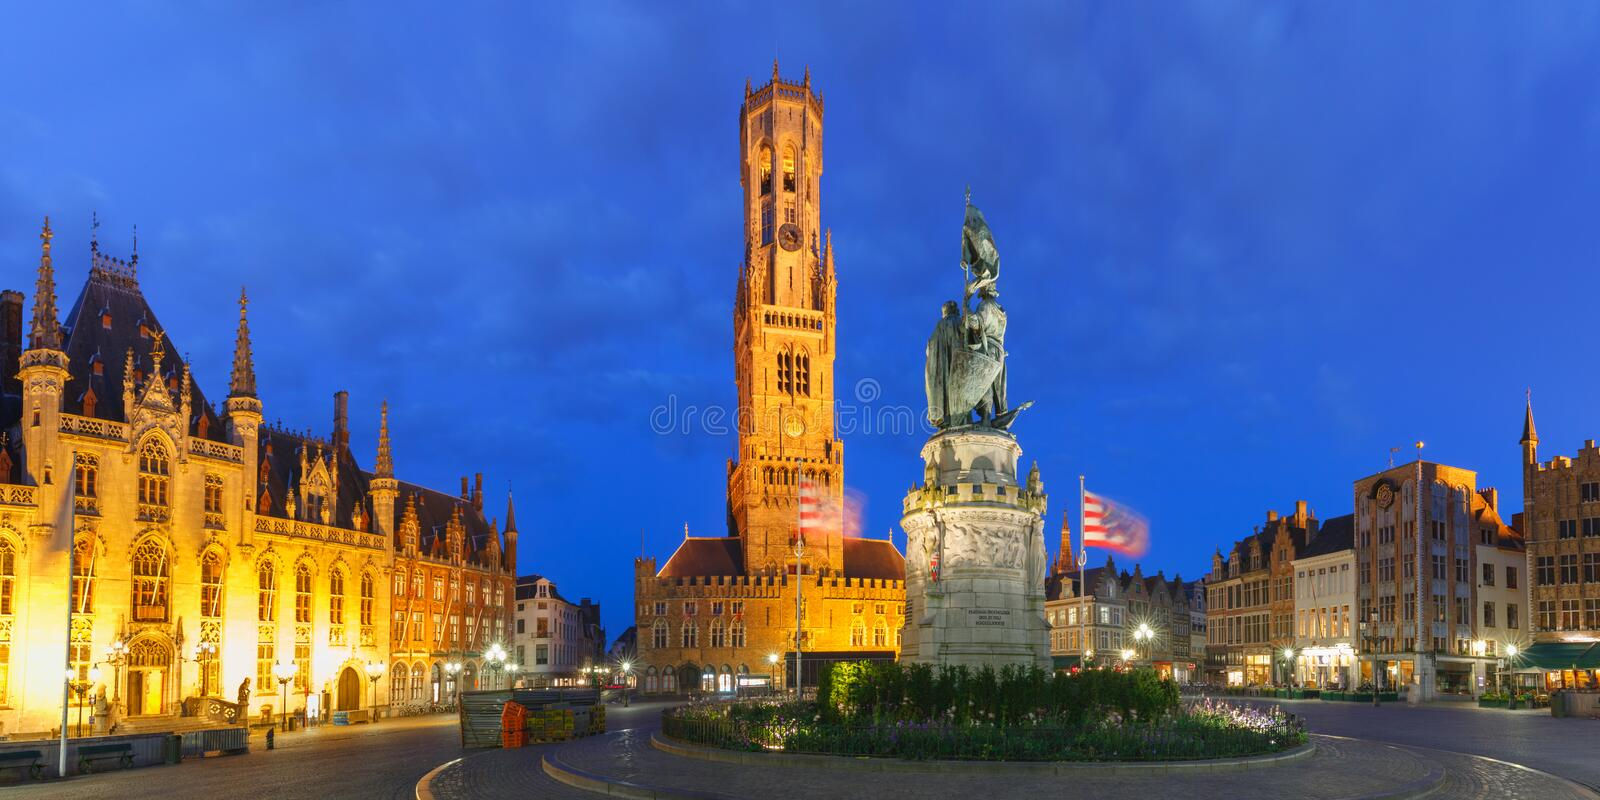 Old Market square in Bruges, Belgium. Panoramic view of Tower Belfort and statue of Jan Breydel and Pieter de Coninck on the Grote Markt or Market Square during stock images